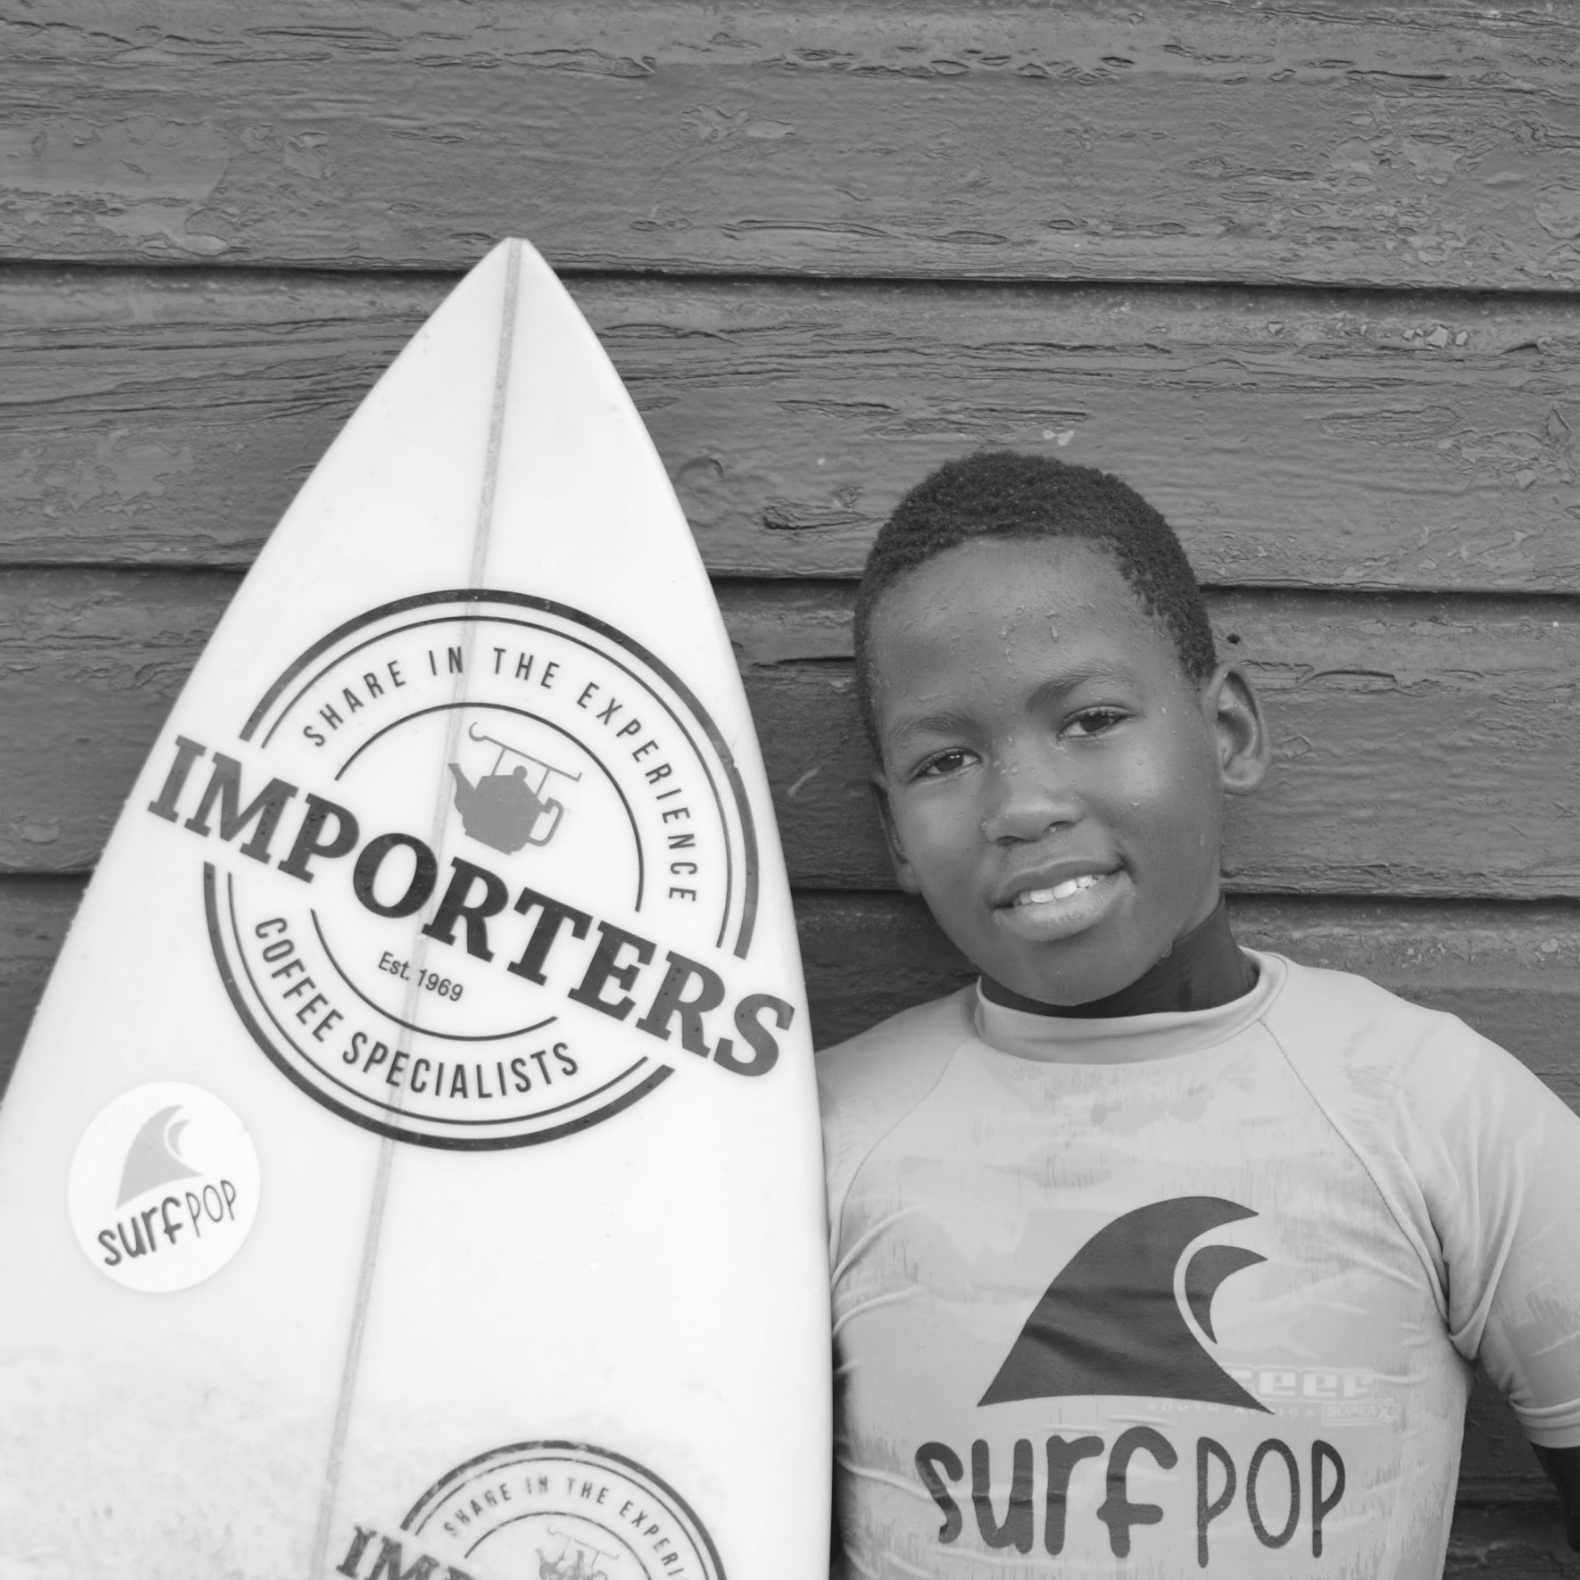 """I like surfing because I can ride a lot of different waves. When I am in the water I feel like a fish. My favourite surfboards are longboards and fishtails. Surfpop is like a second family to me and I like the classroom because it helps me at school. """